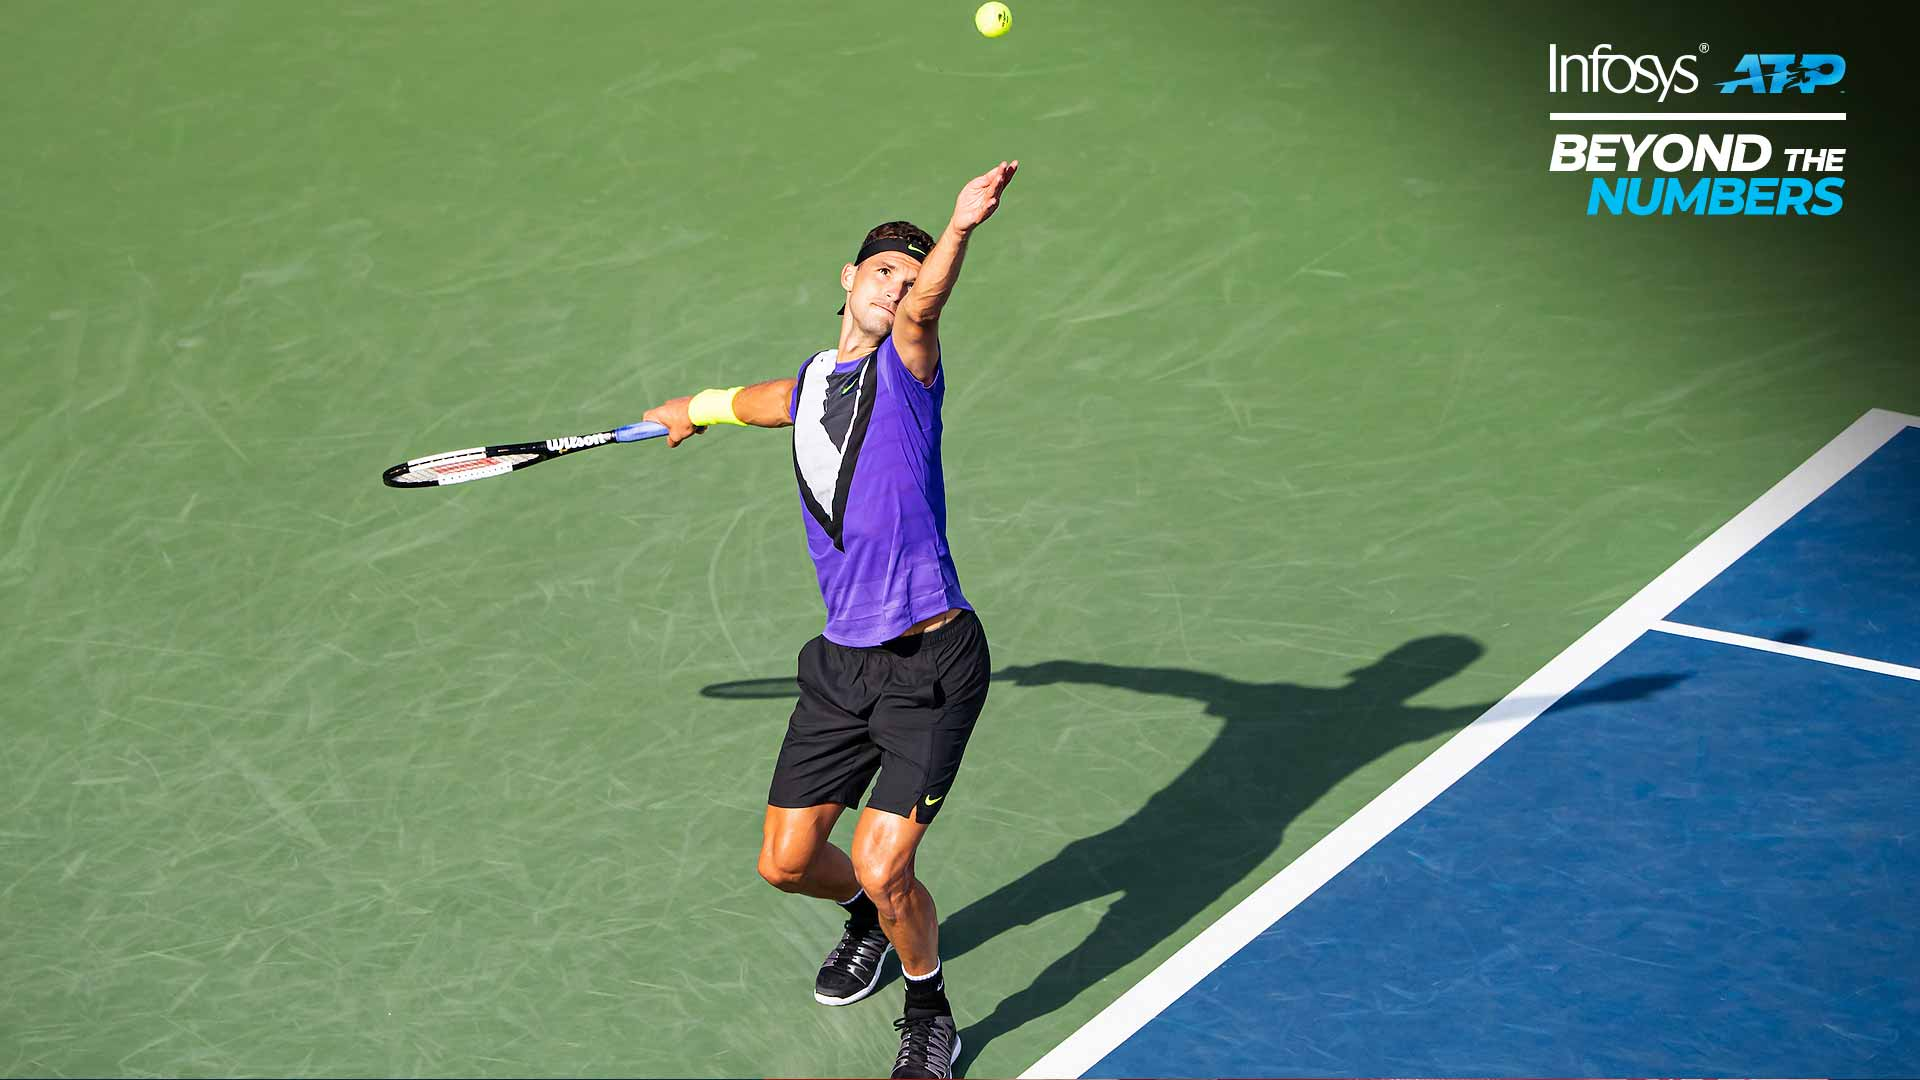 Grigor Dimitrov serves at the US Open 2019.